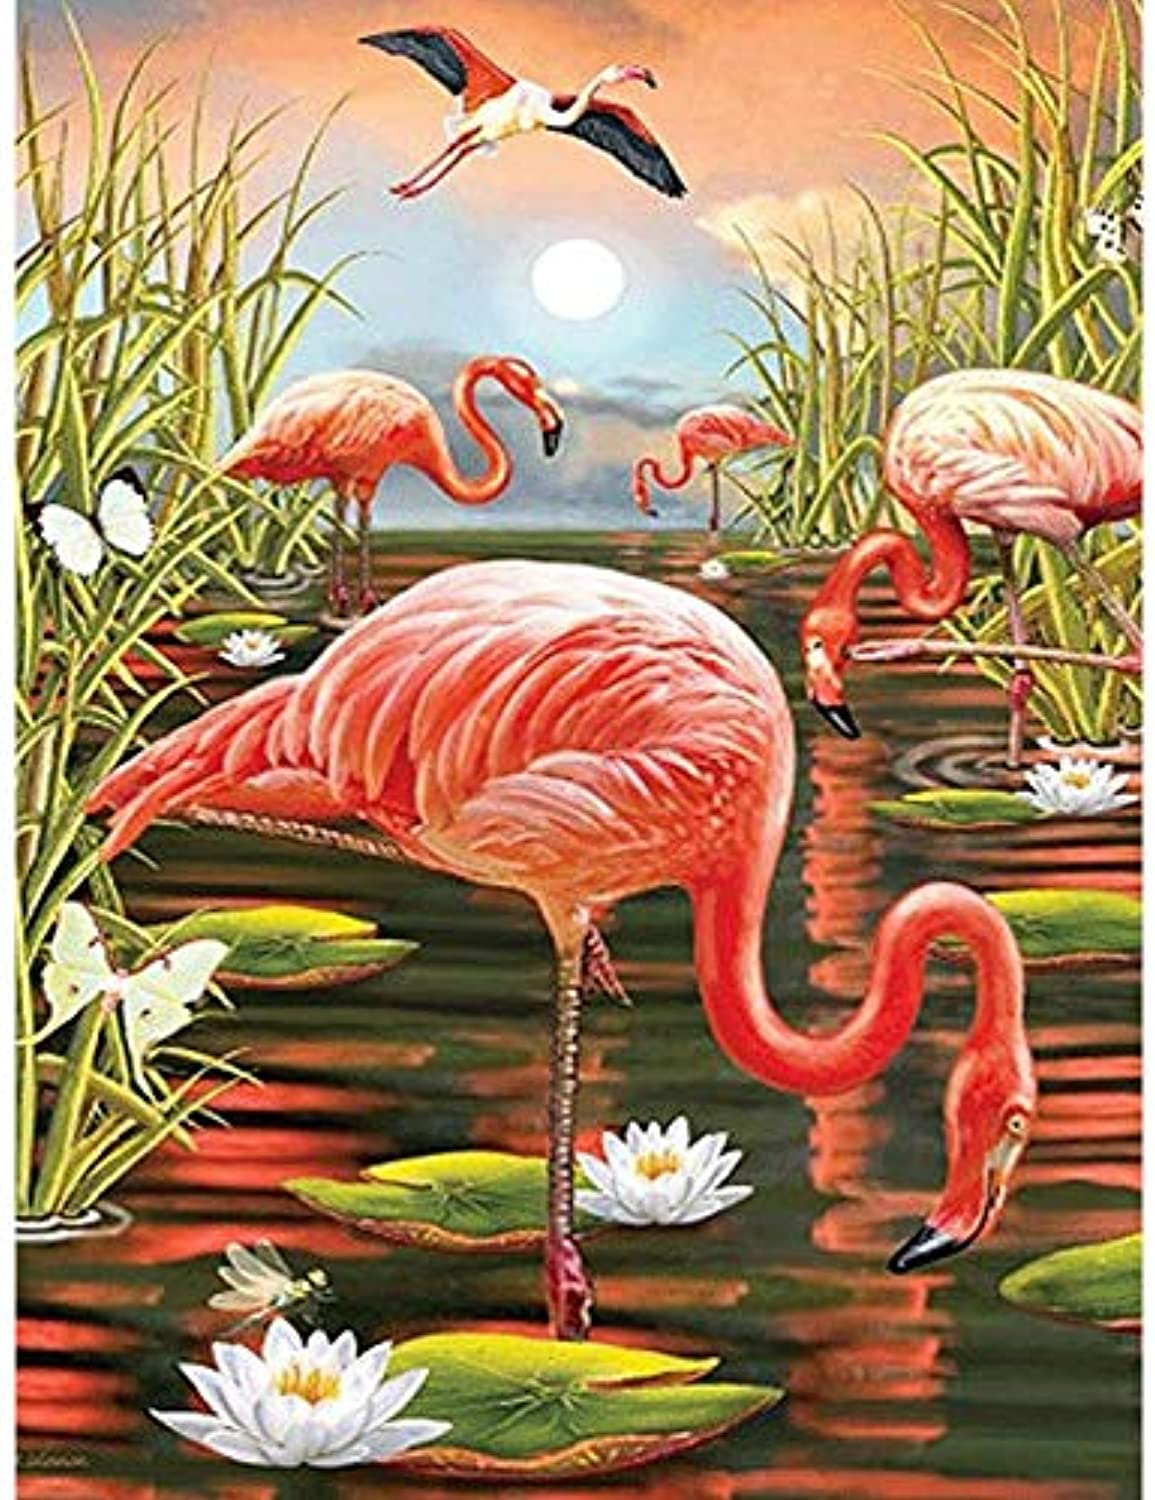 DIY Oil Paint by Number Kit for Adults Beginner 16x20 Inch - Flamingos,Drawing with Brushes Living Room Decor Decorations Gifts (Framed)